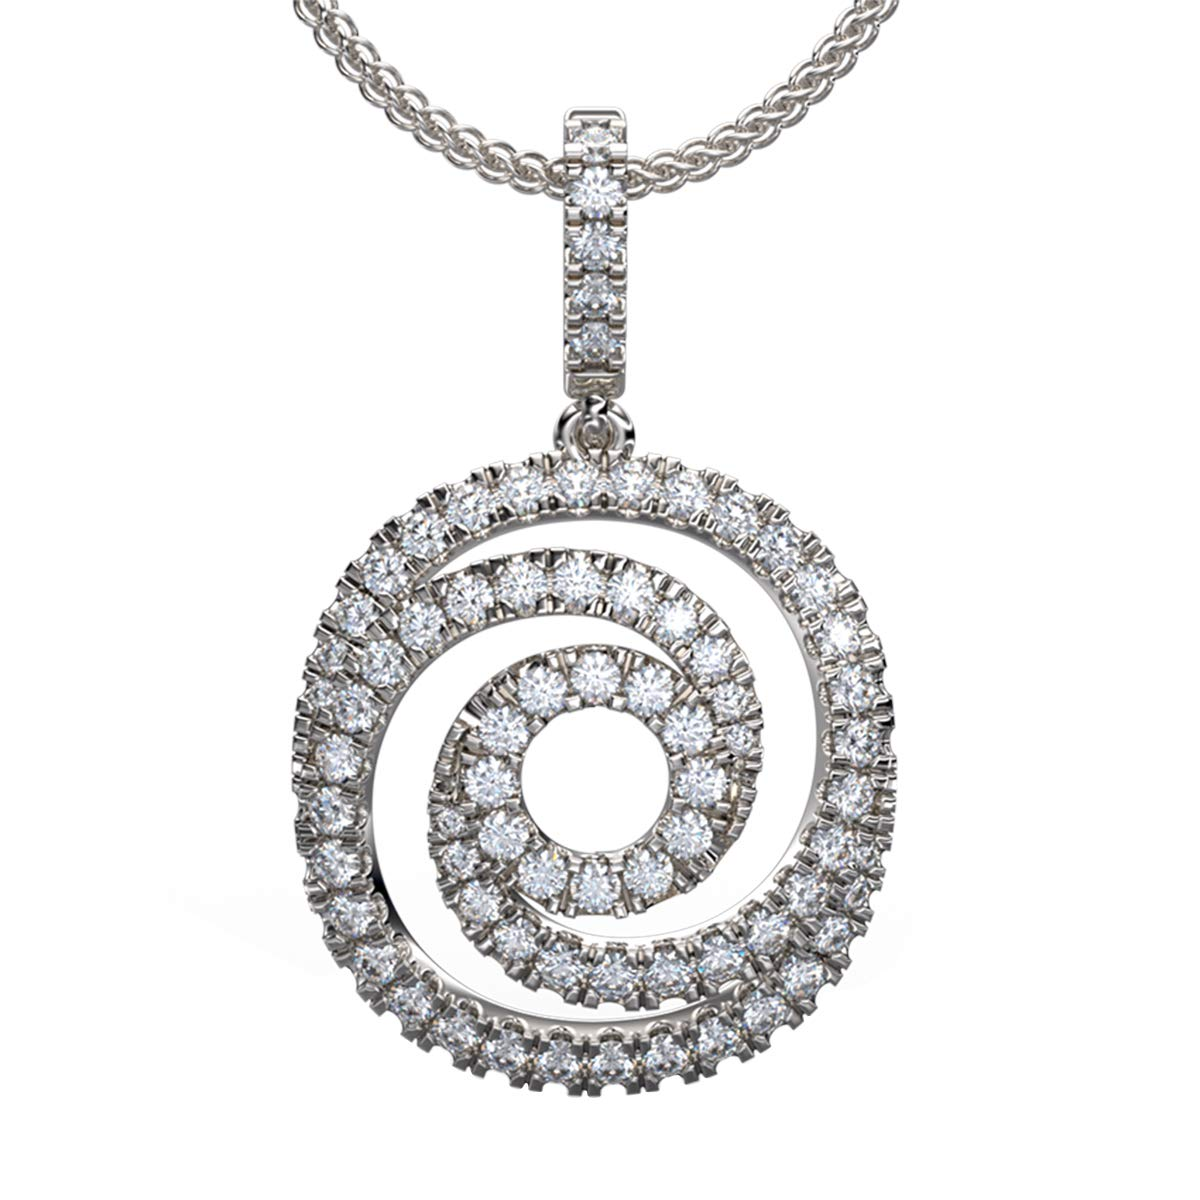 0.75 Ct Round Cut Simulated Diamond Swirl Pendant With Chain .925 Sterling Silver